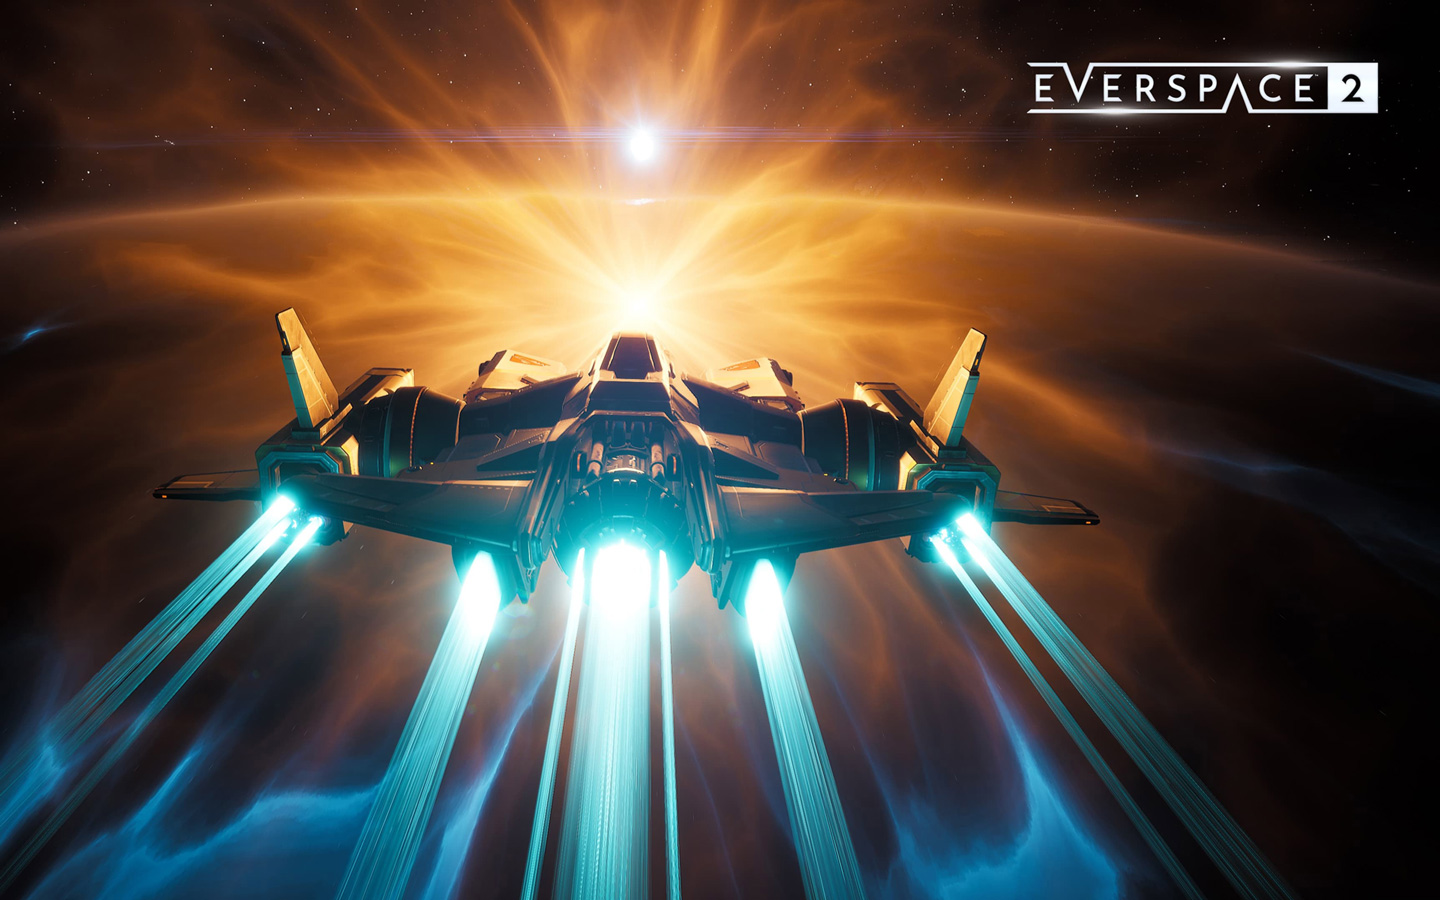 Free Everspace 2 Wallpaper in 1440x900